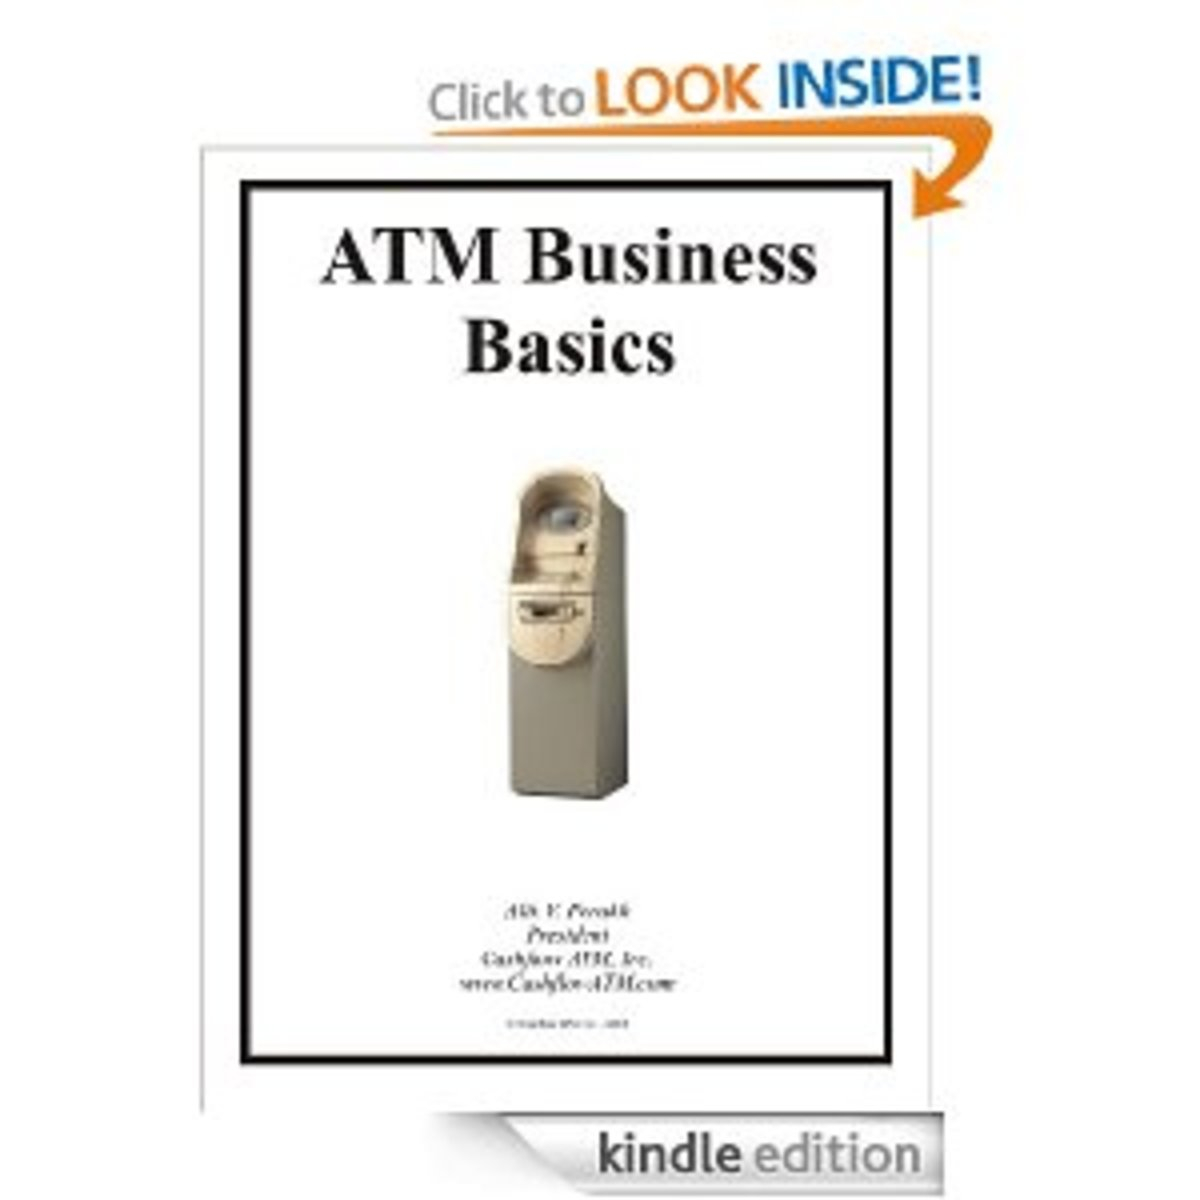 earning-passive-income-with-an-atm-business